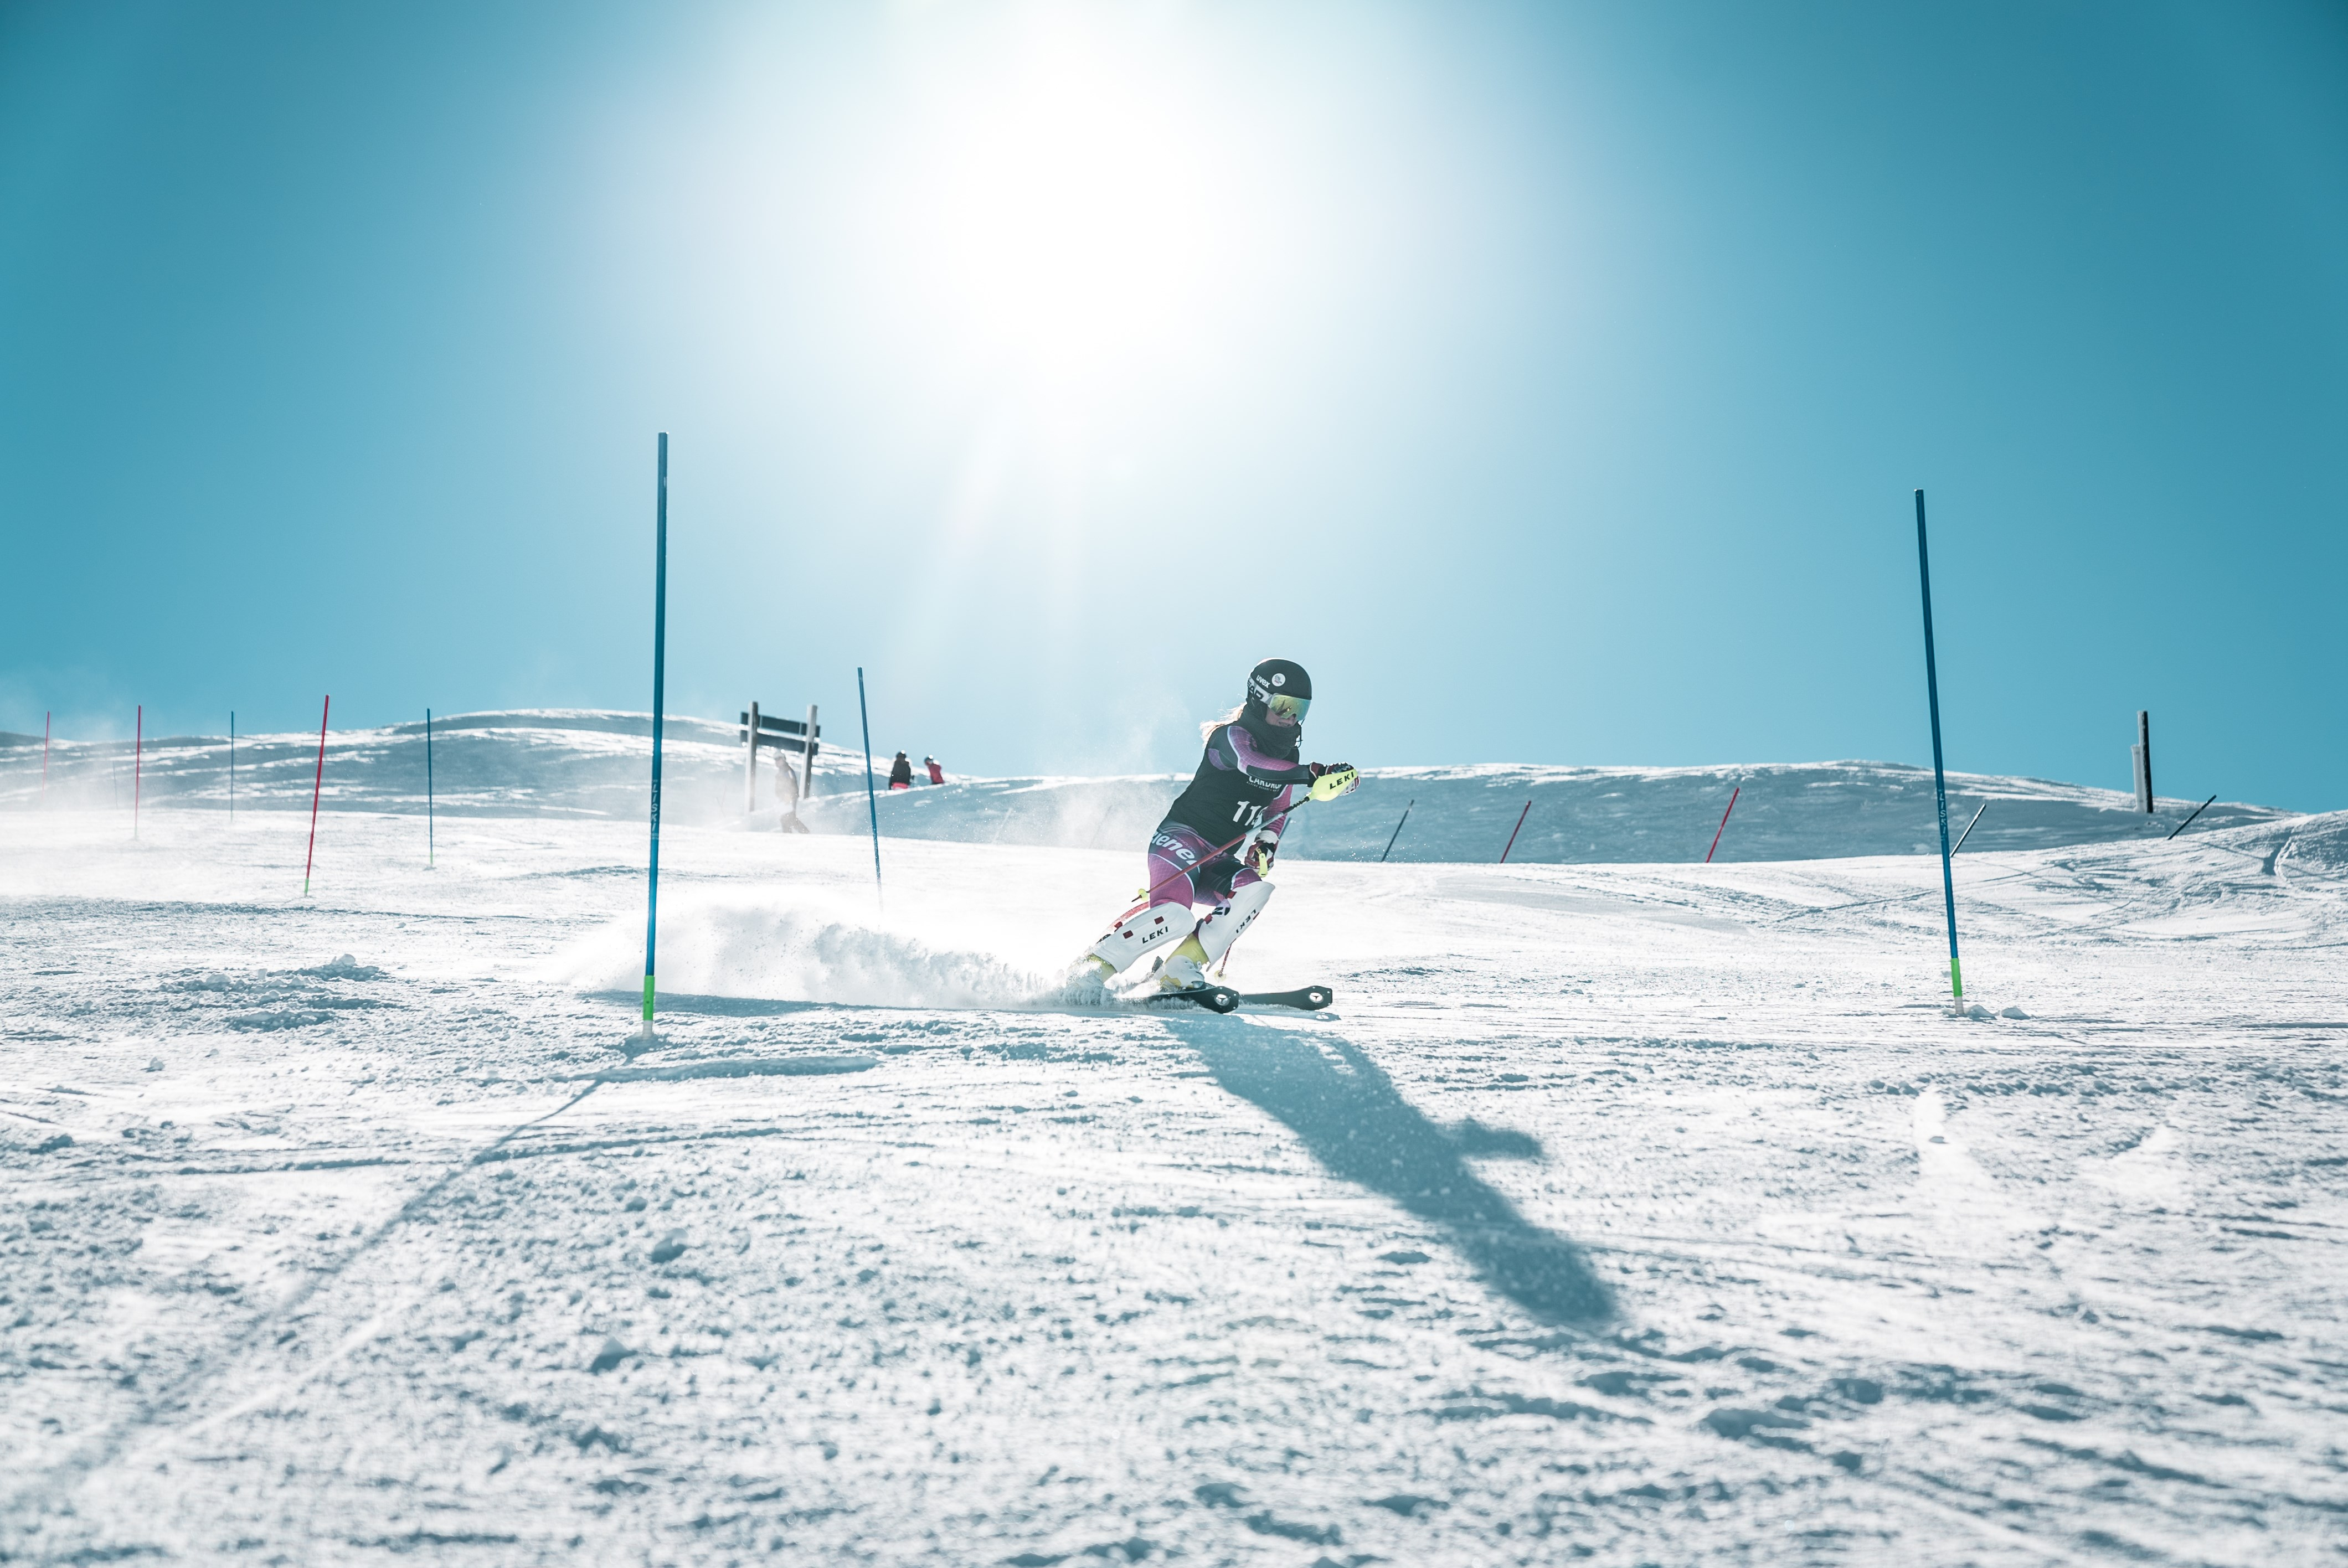 cardrona-race-team-Queenstown ski races-how to ski